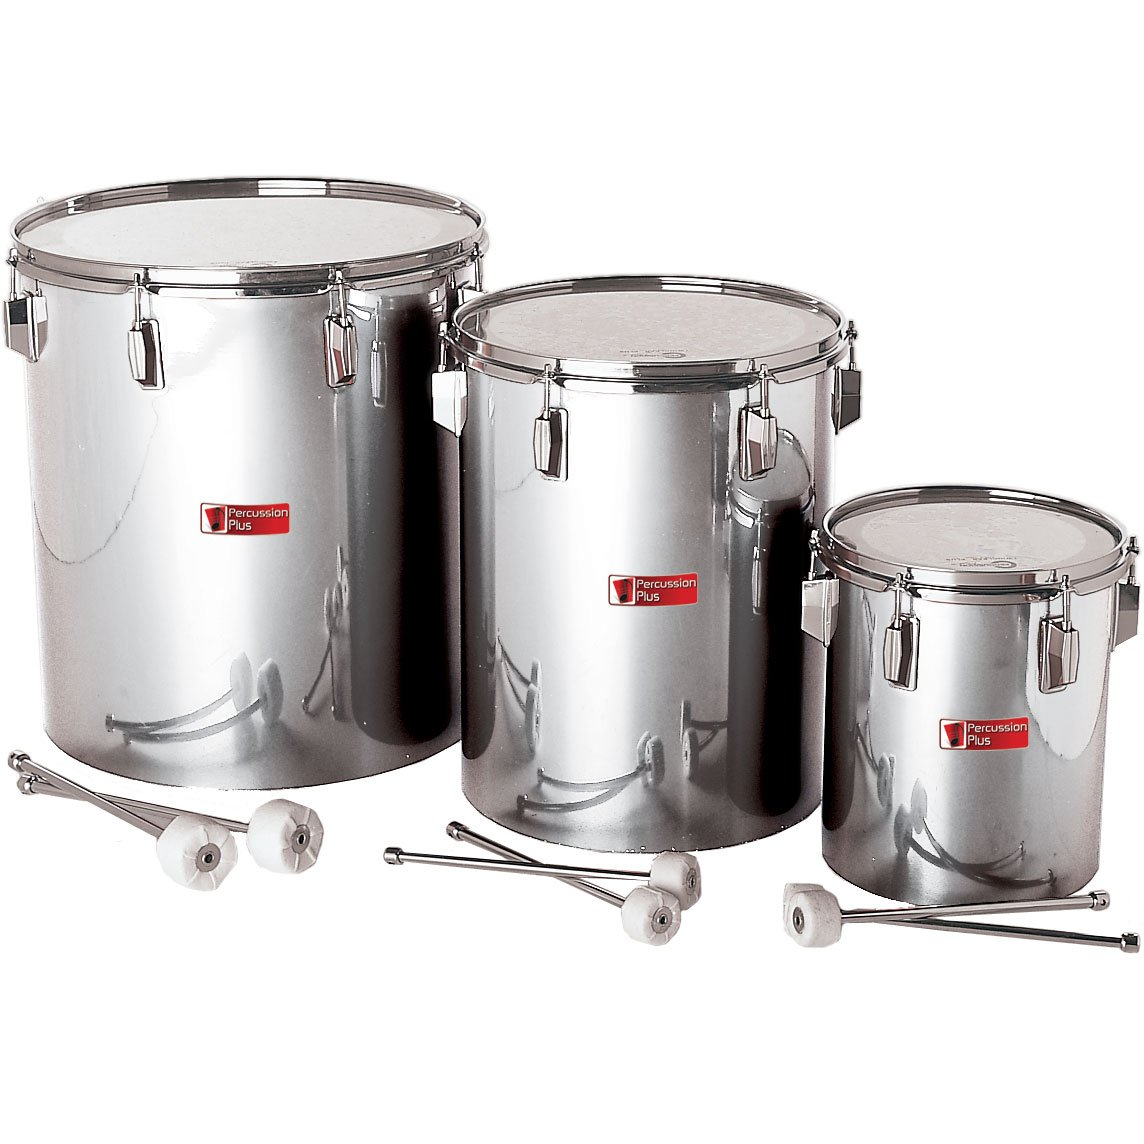 Percussion Plus PP780 Samba Drums in Silver Matt Finish (Set of 3)